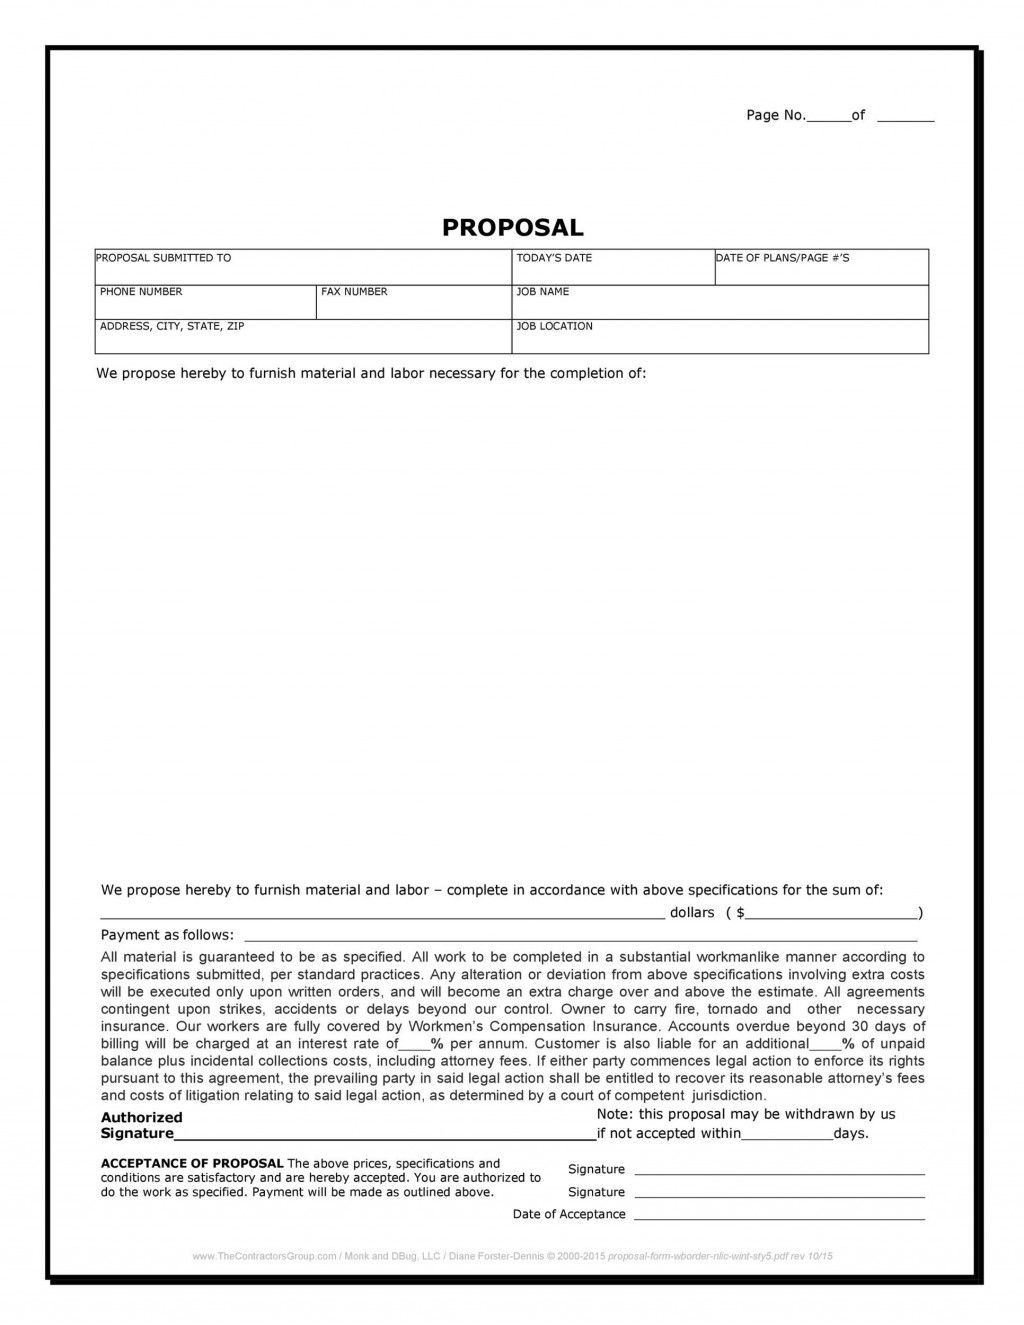 005 Exceptional Microsoft Word Job Proposal Template Sample Full